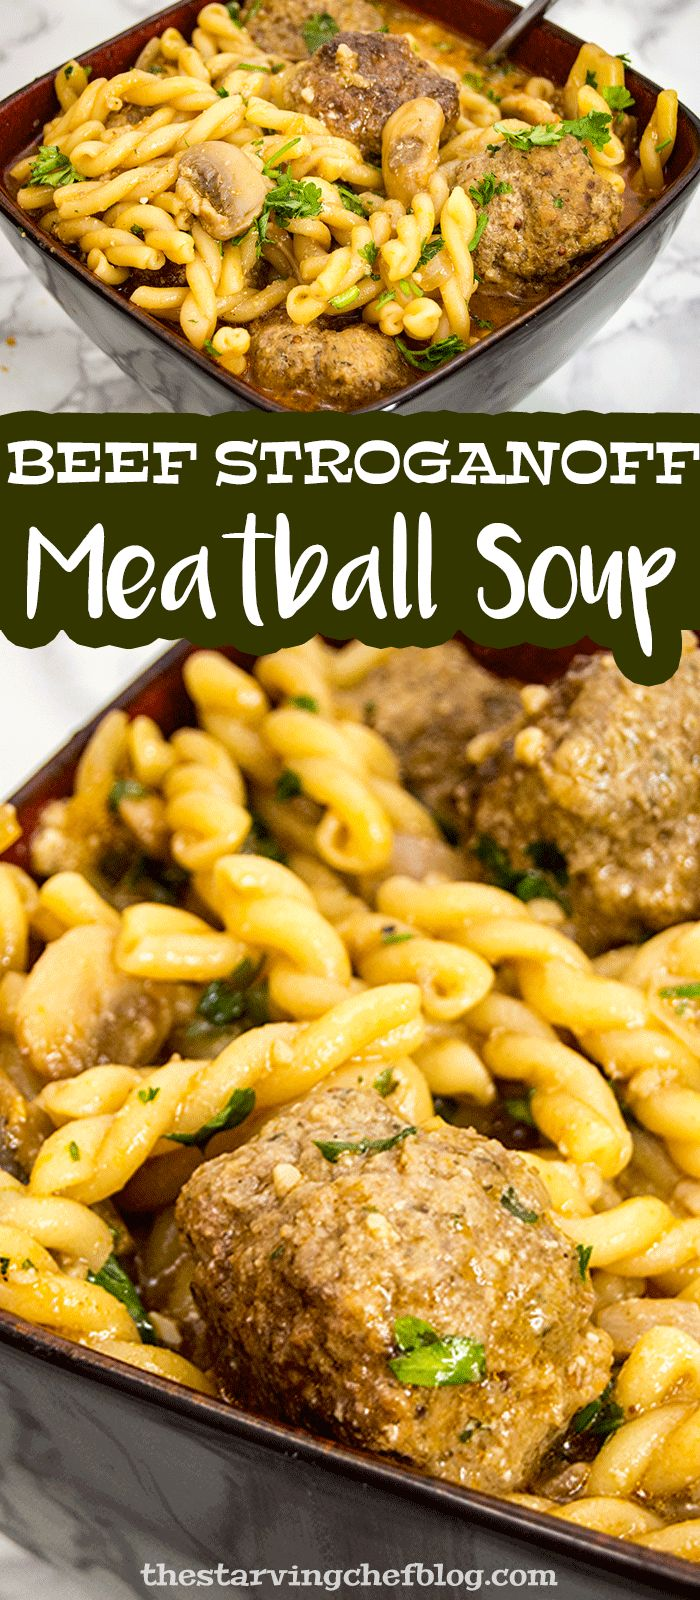 The Starving Chef | Beef stroganoff meatball soup - cooked in a Dutch oven over the stove, ready in less than an hour!